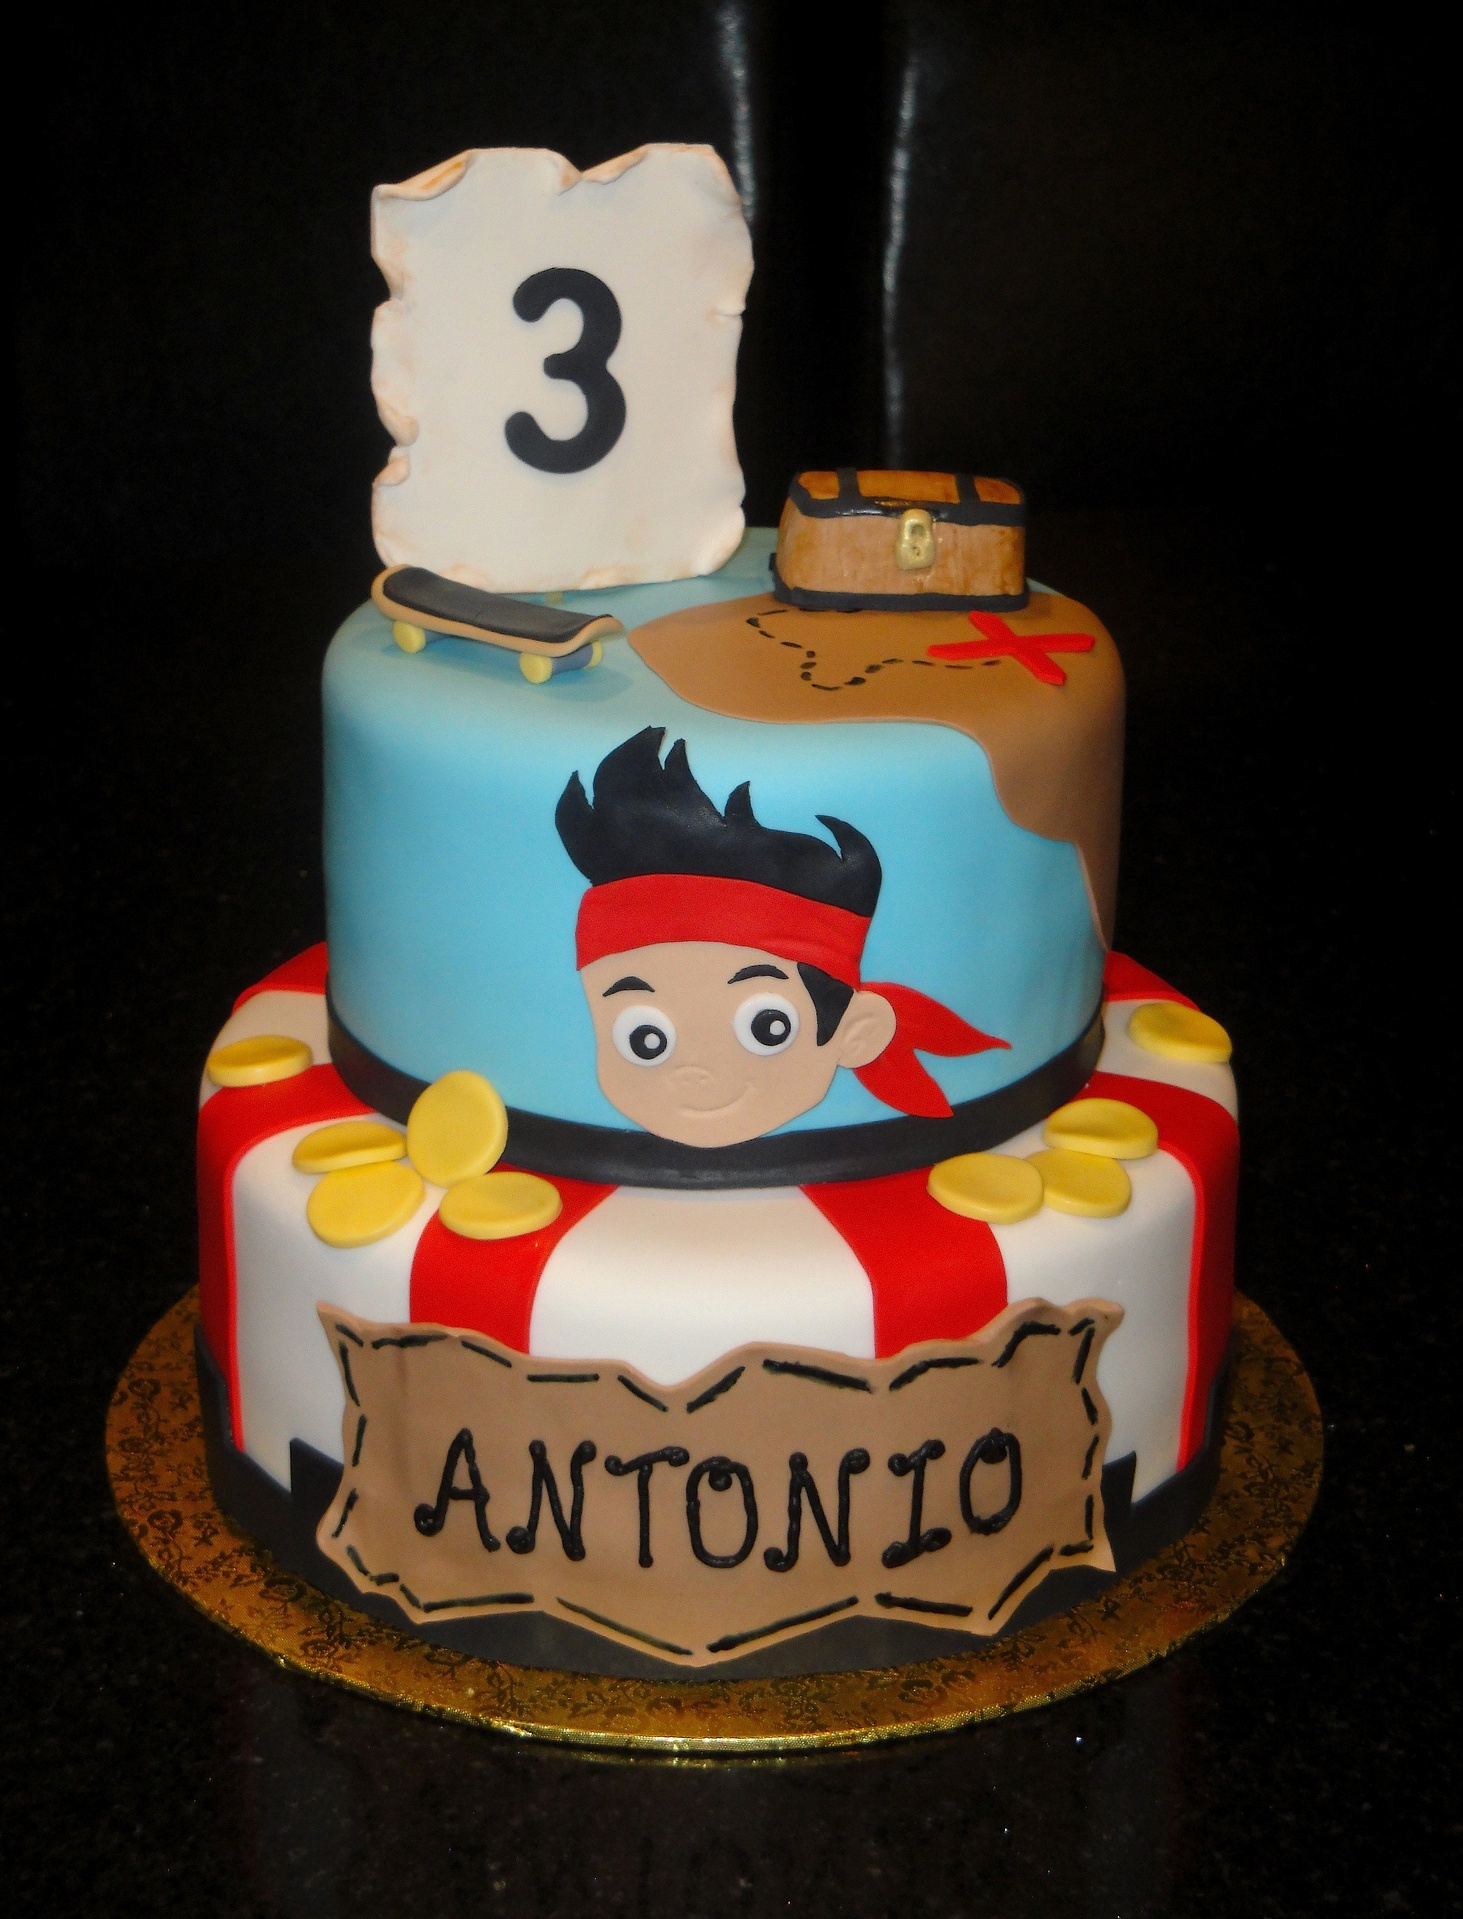 jake and the neverland pirates tiered cake - photo #28